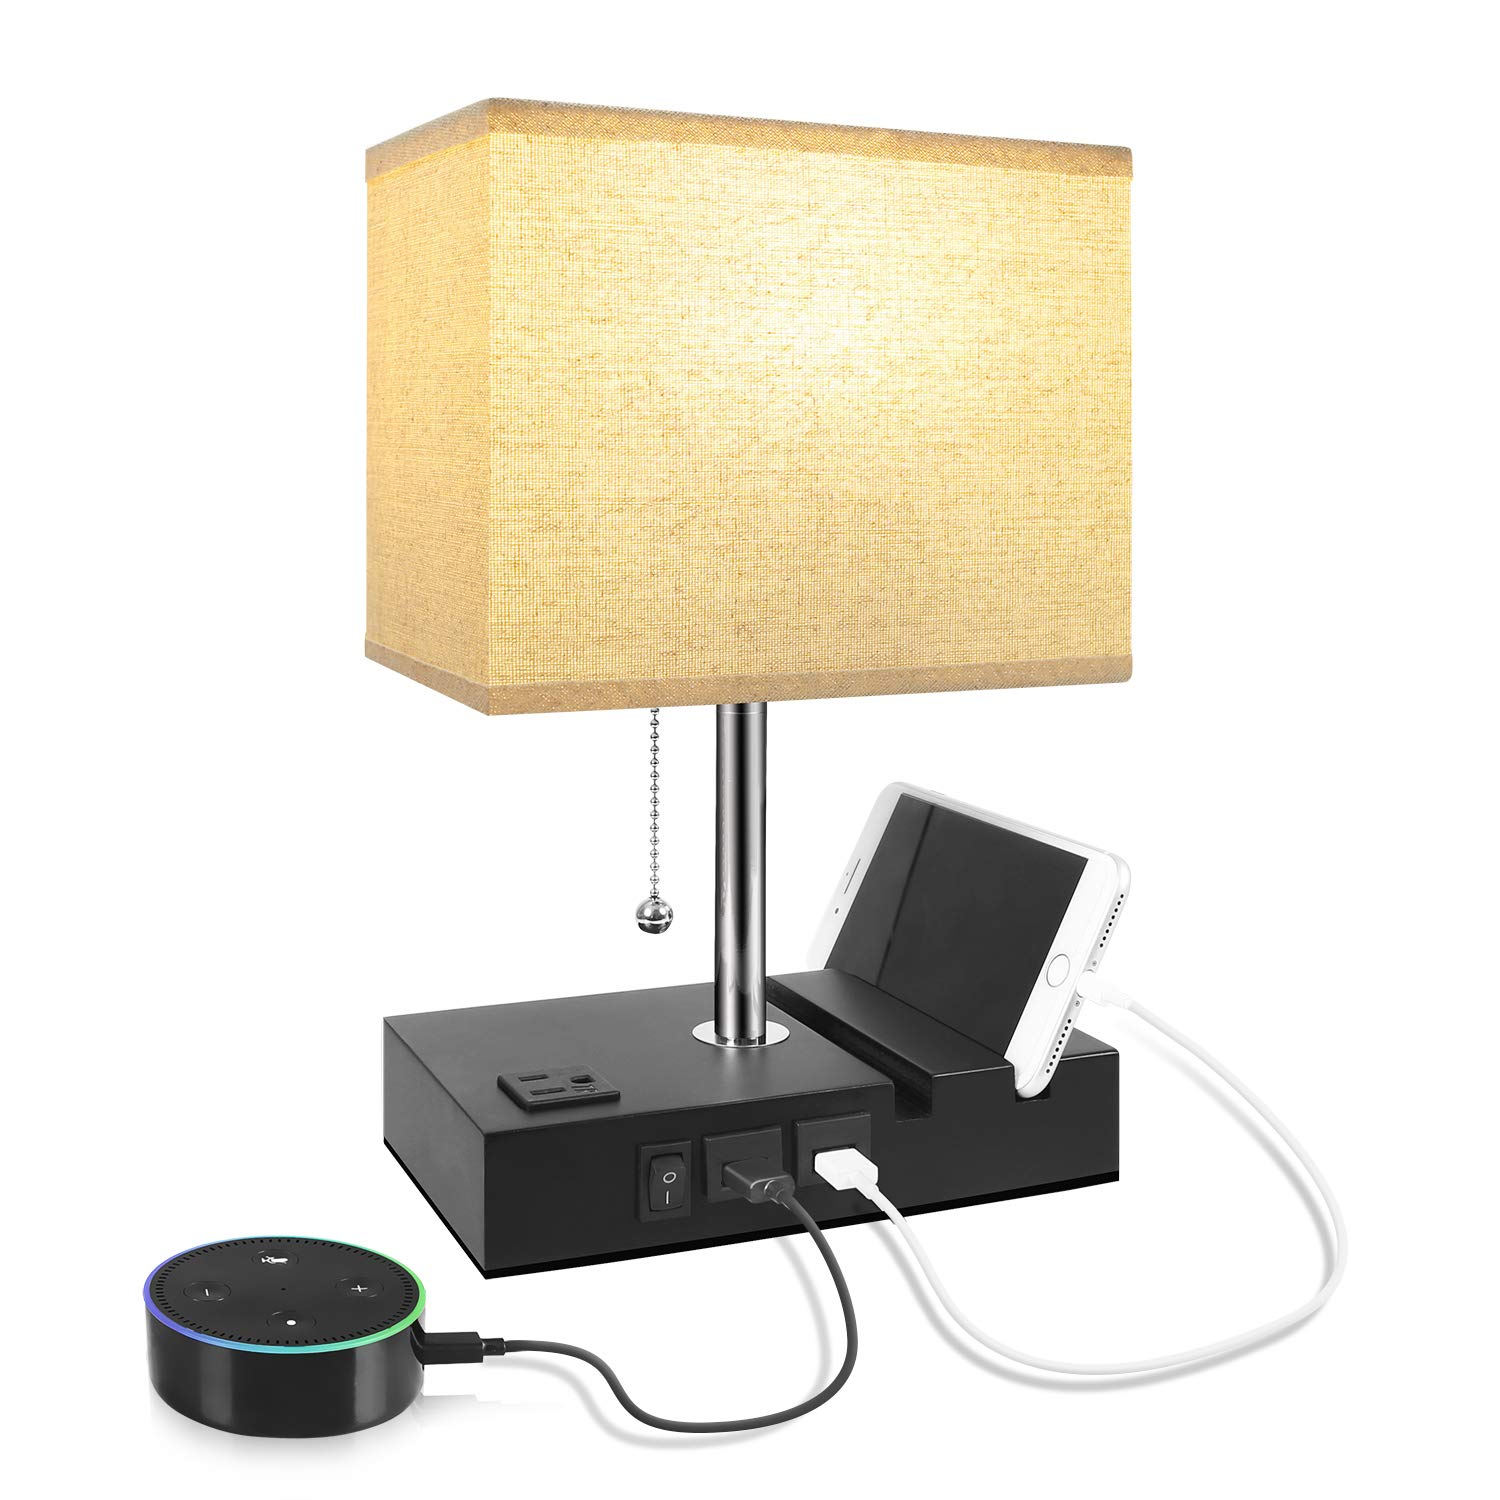 USB Table Lamp with 2 Useful USB Ports & One Outlet, Aooshine USB Bedside Lamp, Suitable for Nightstand Lamp or Bedroom Lamp, Grey Fabric Shade Desk Lamp,with 2 Convenient Phone Stand On The Base